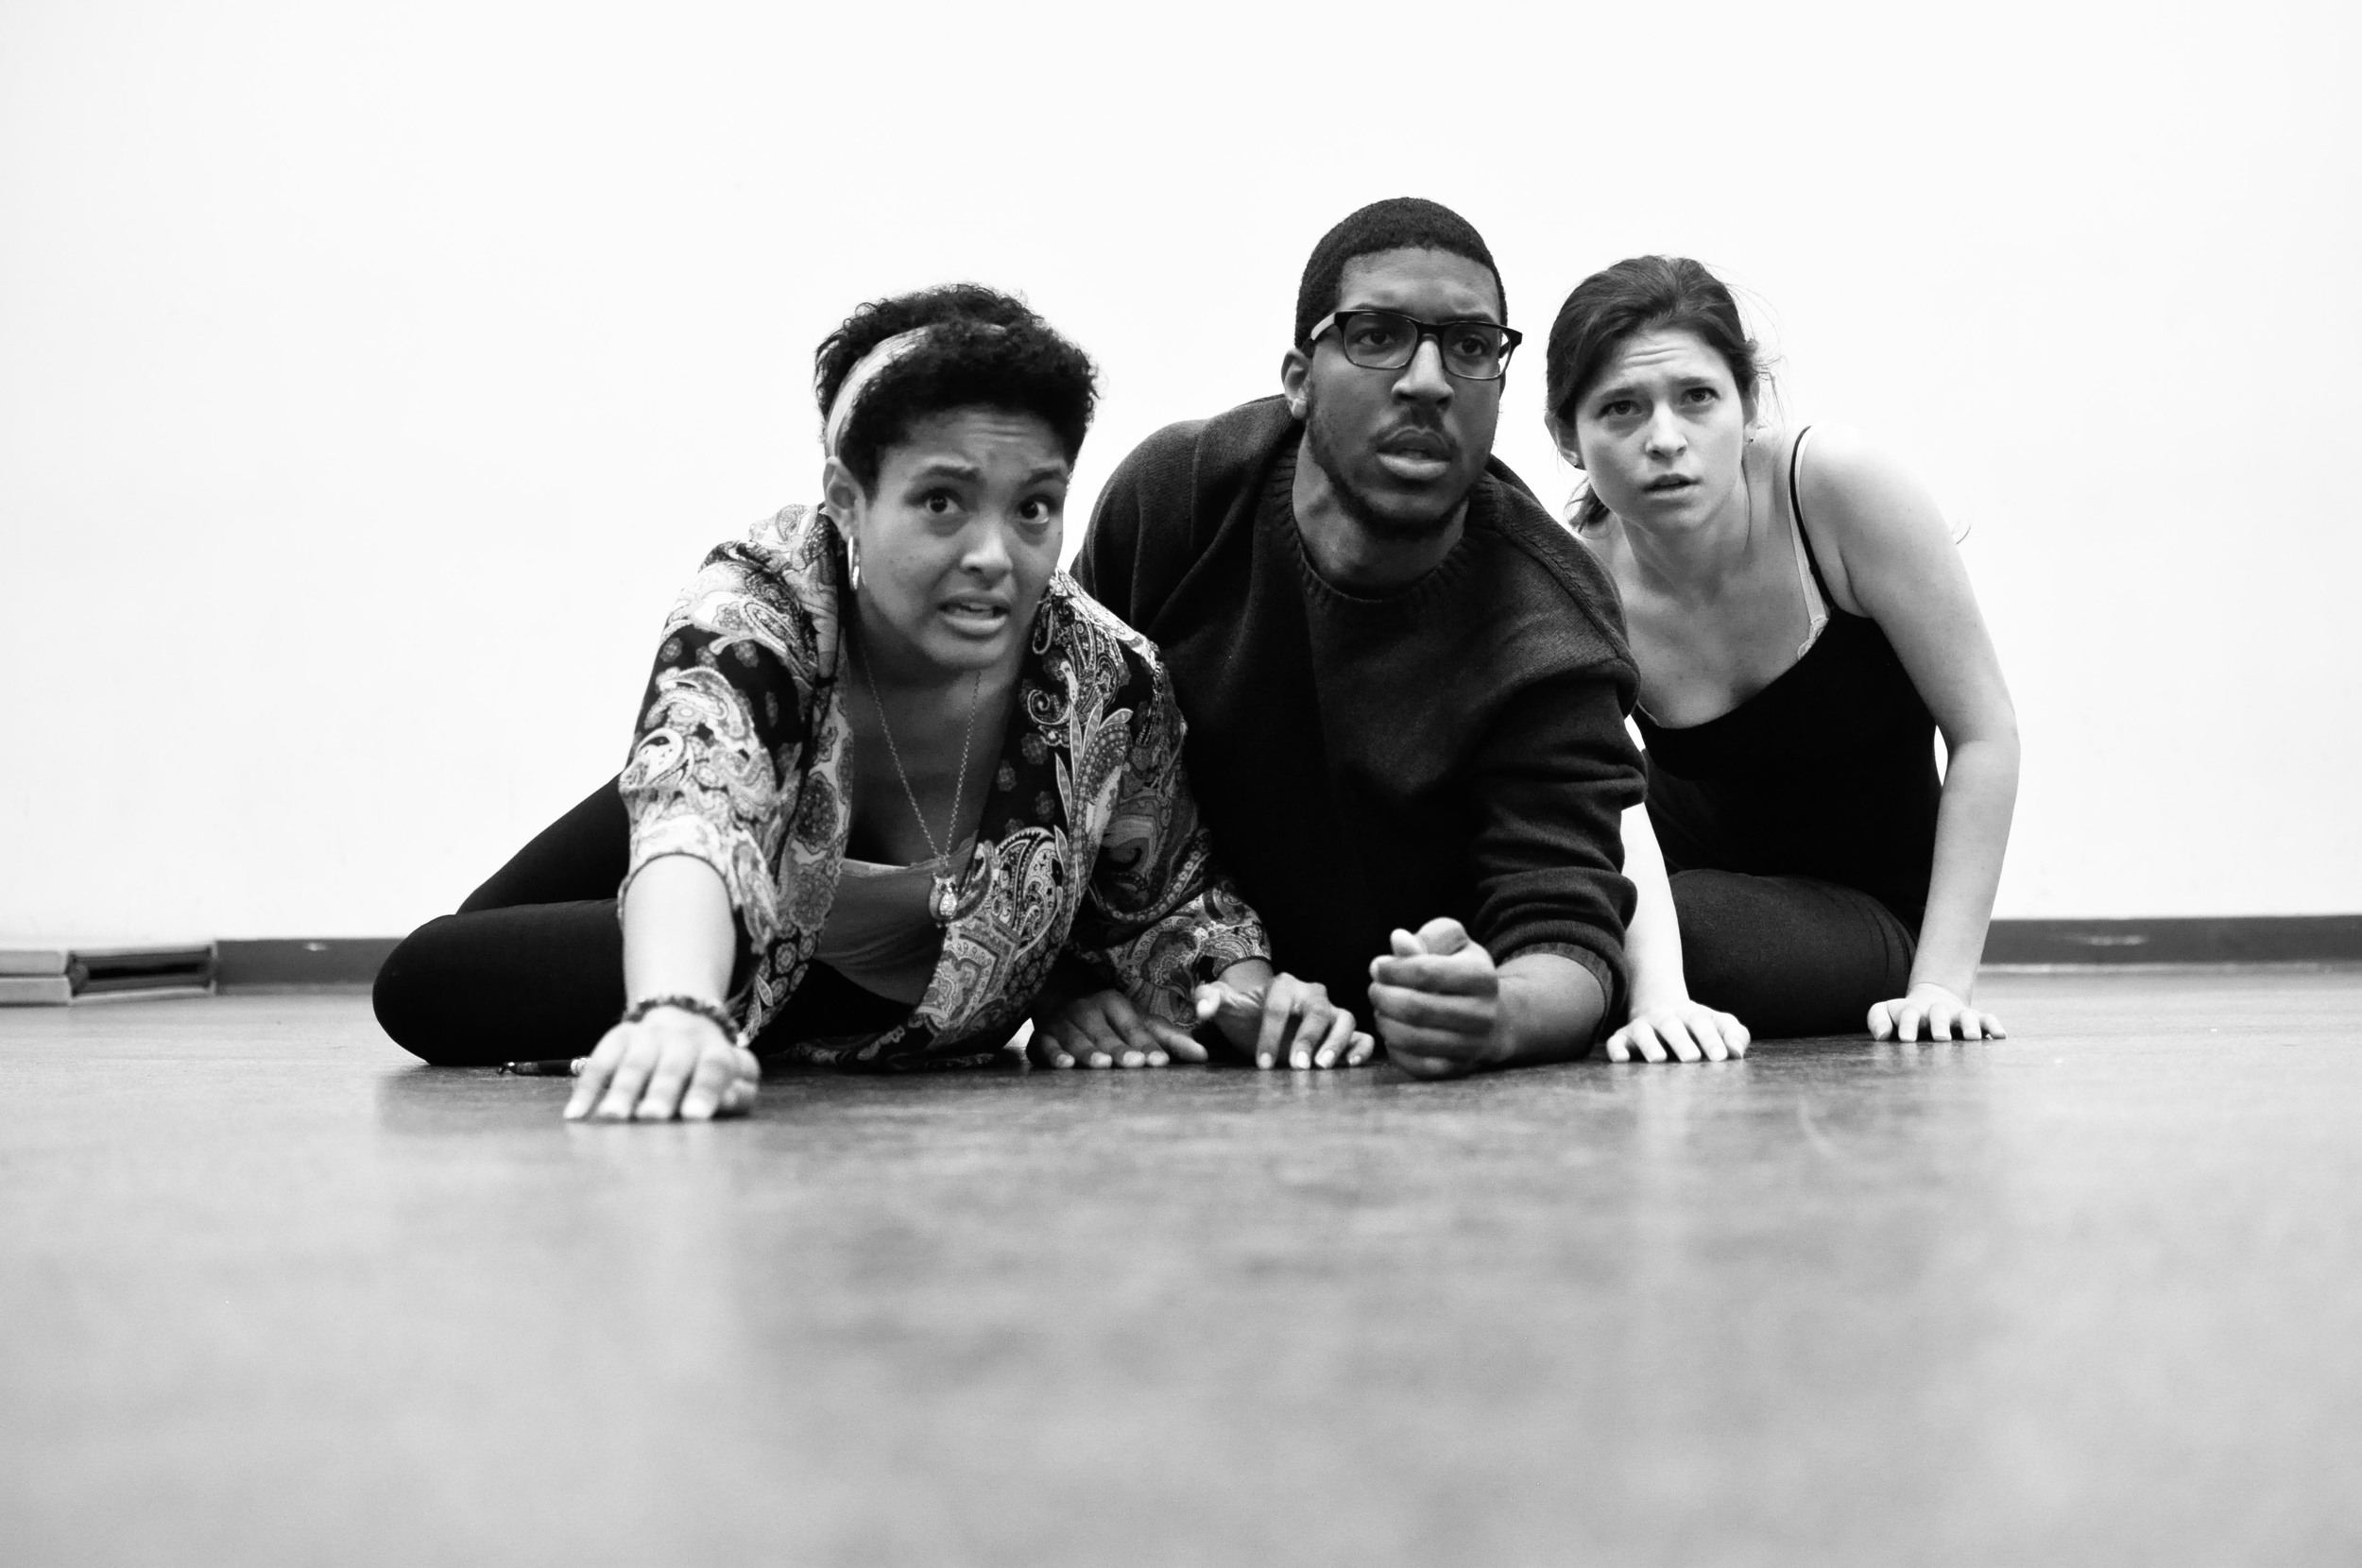 Olivia, Cassagnol, and Emily in Rehearsal